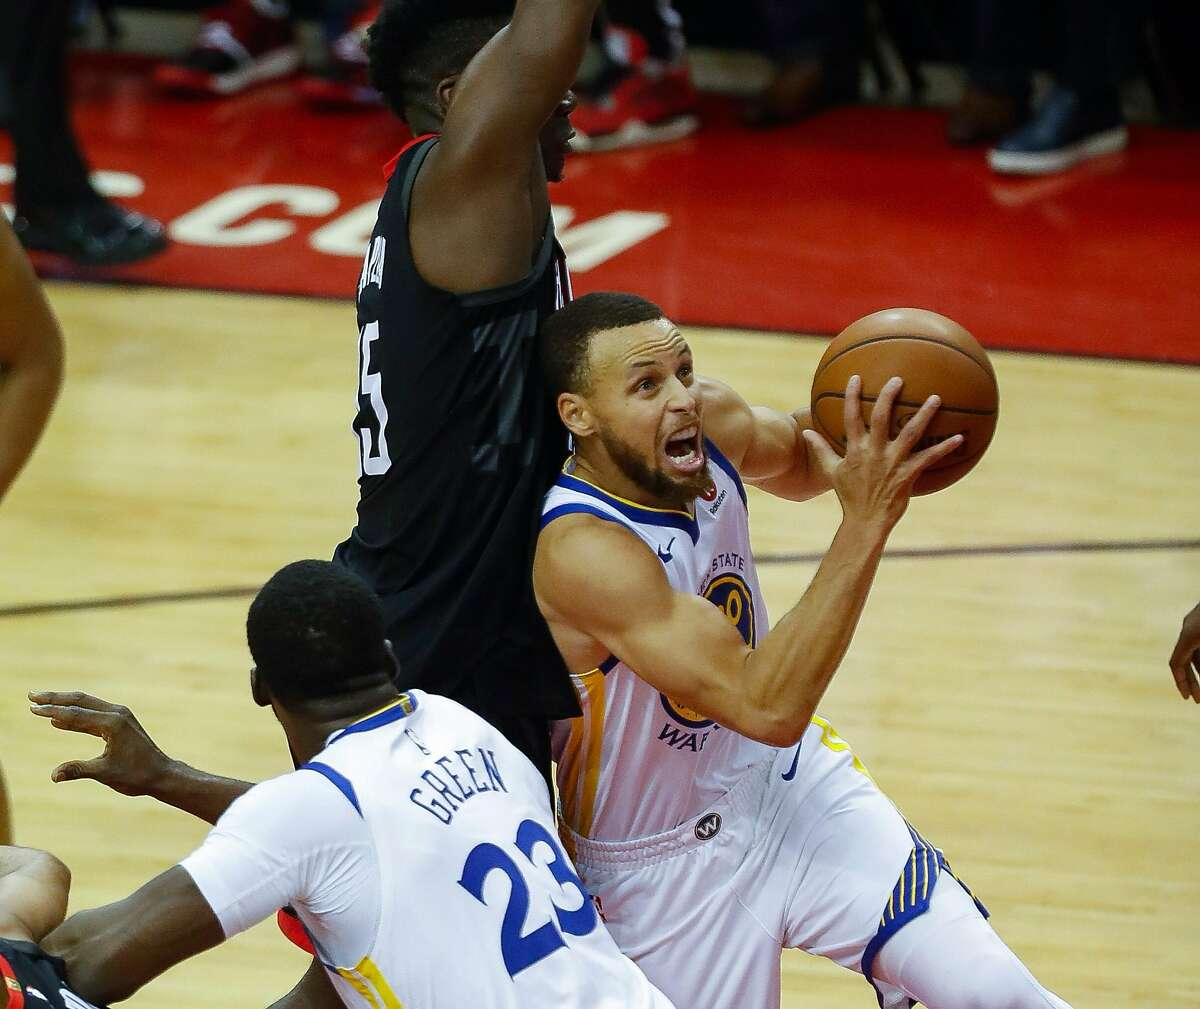 Golden State Warriors guard Stephen Curry (30) shoots around Houston Rockets center Clint Capela (15) during Game 2 of the Western Conference Finals at the Toyota Center, Wednesday, May 16, 2018, in Houston.